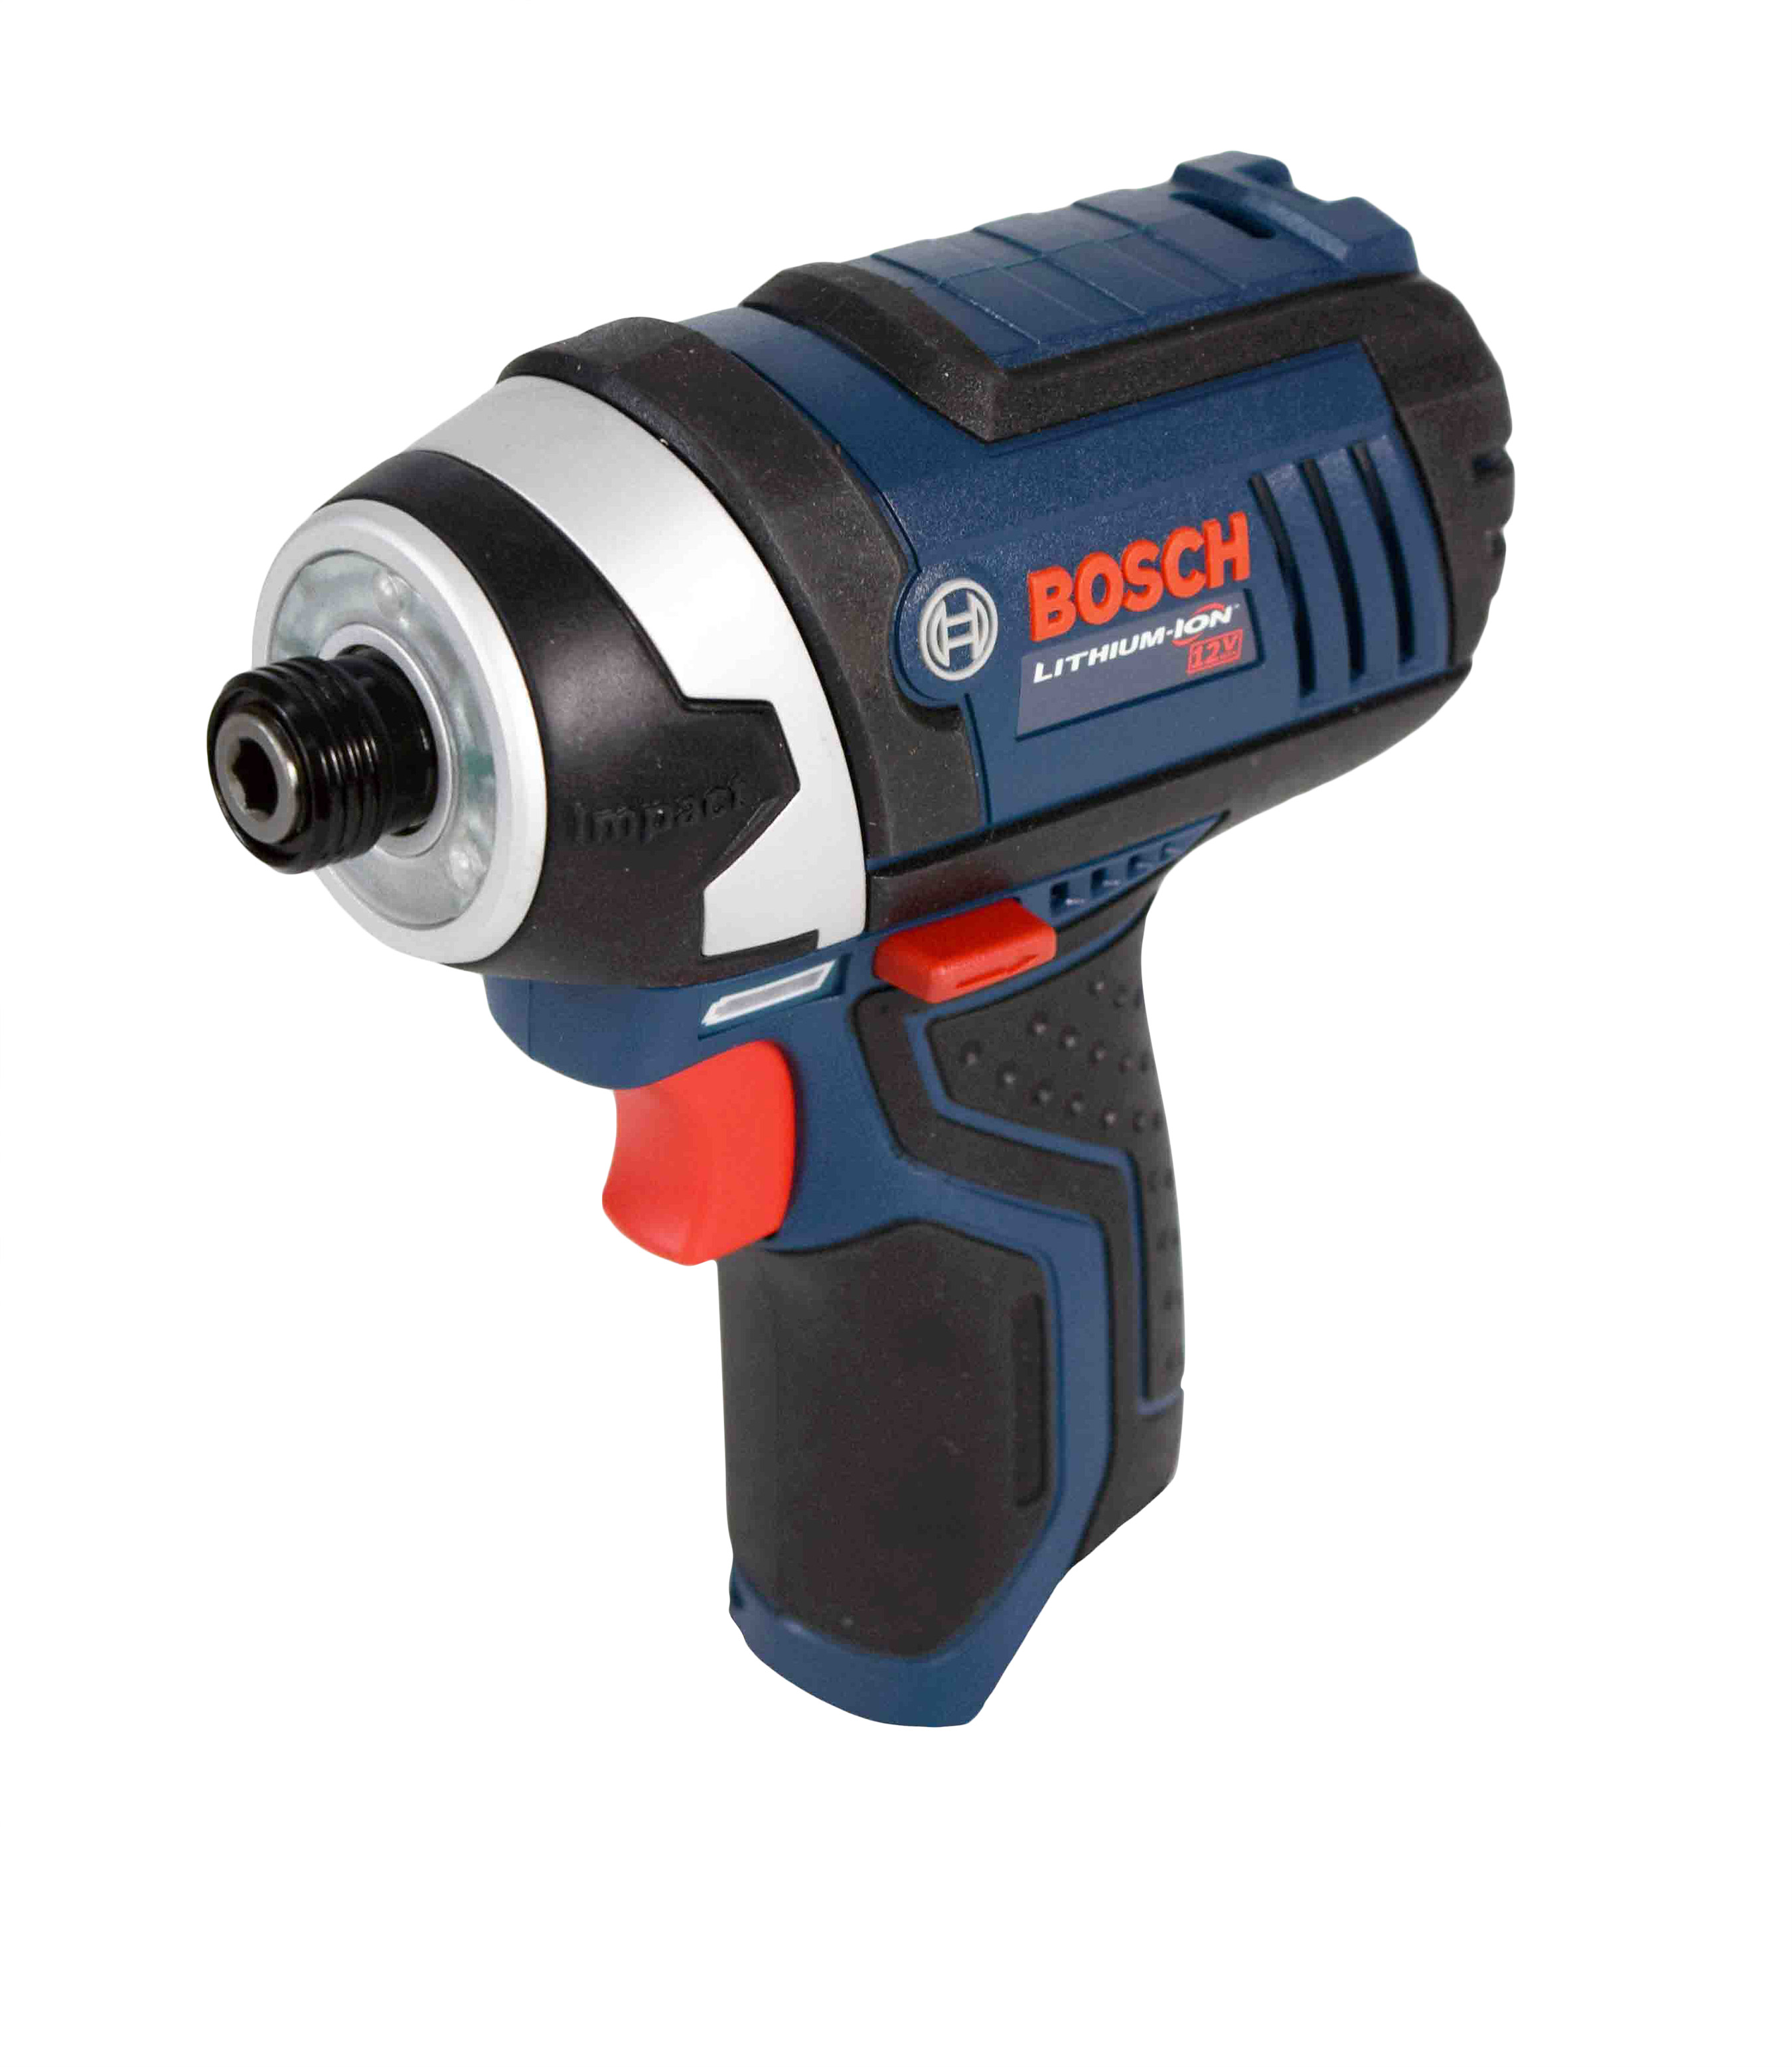 Bosch-PS41-12V-Lithium-Ion-1-4-Cordless-Impact-Drill-image-2